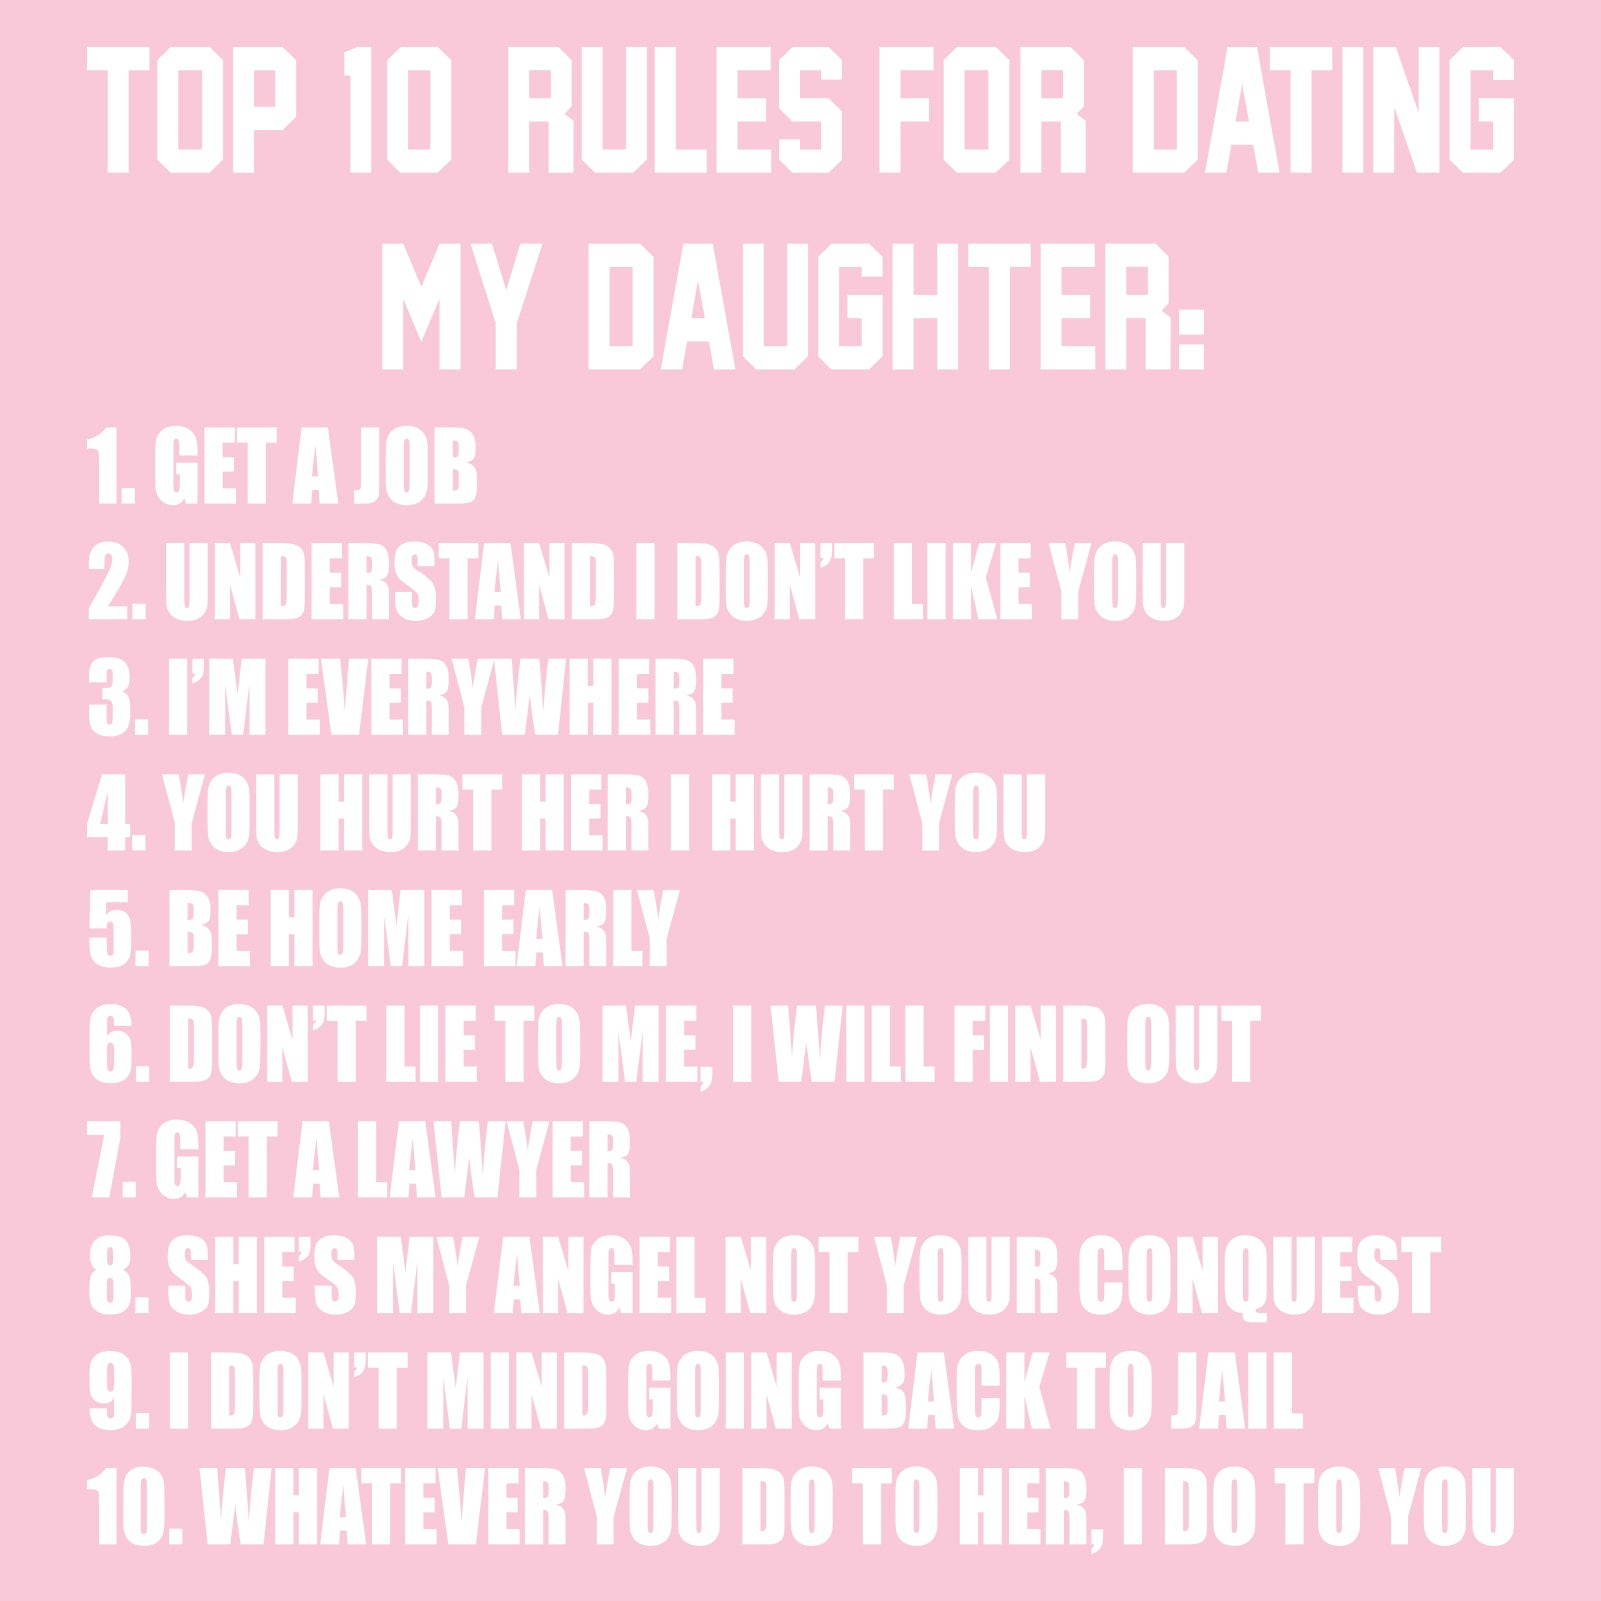 Rules For Dating My Daughter By One Very Protective Dad funny jokes story lol dad funny quote funny quotes funny sayings joke humor daughters stories.